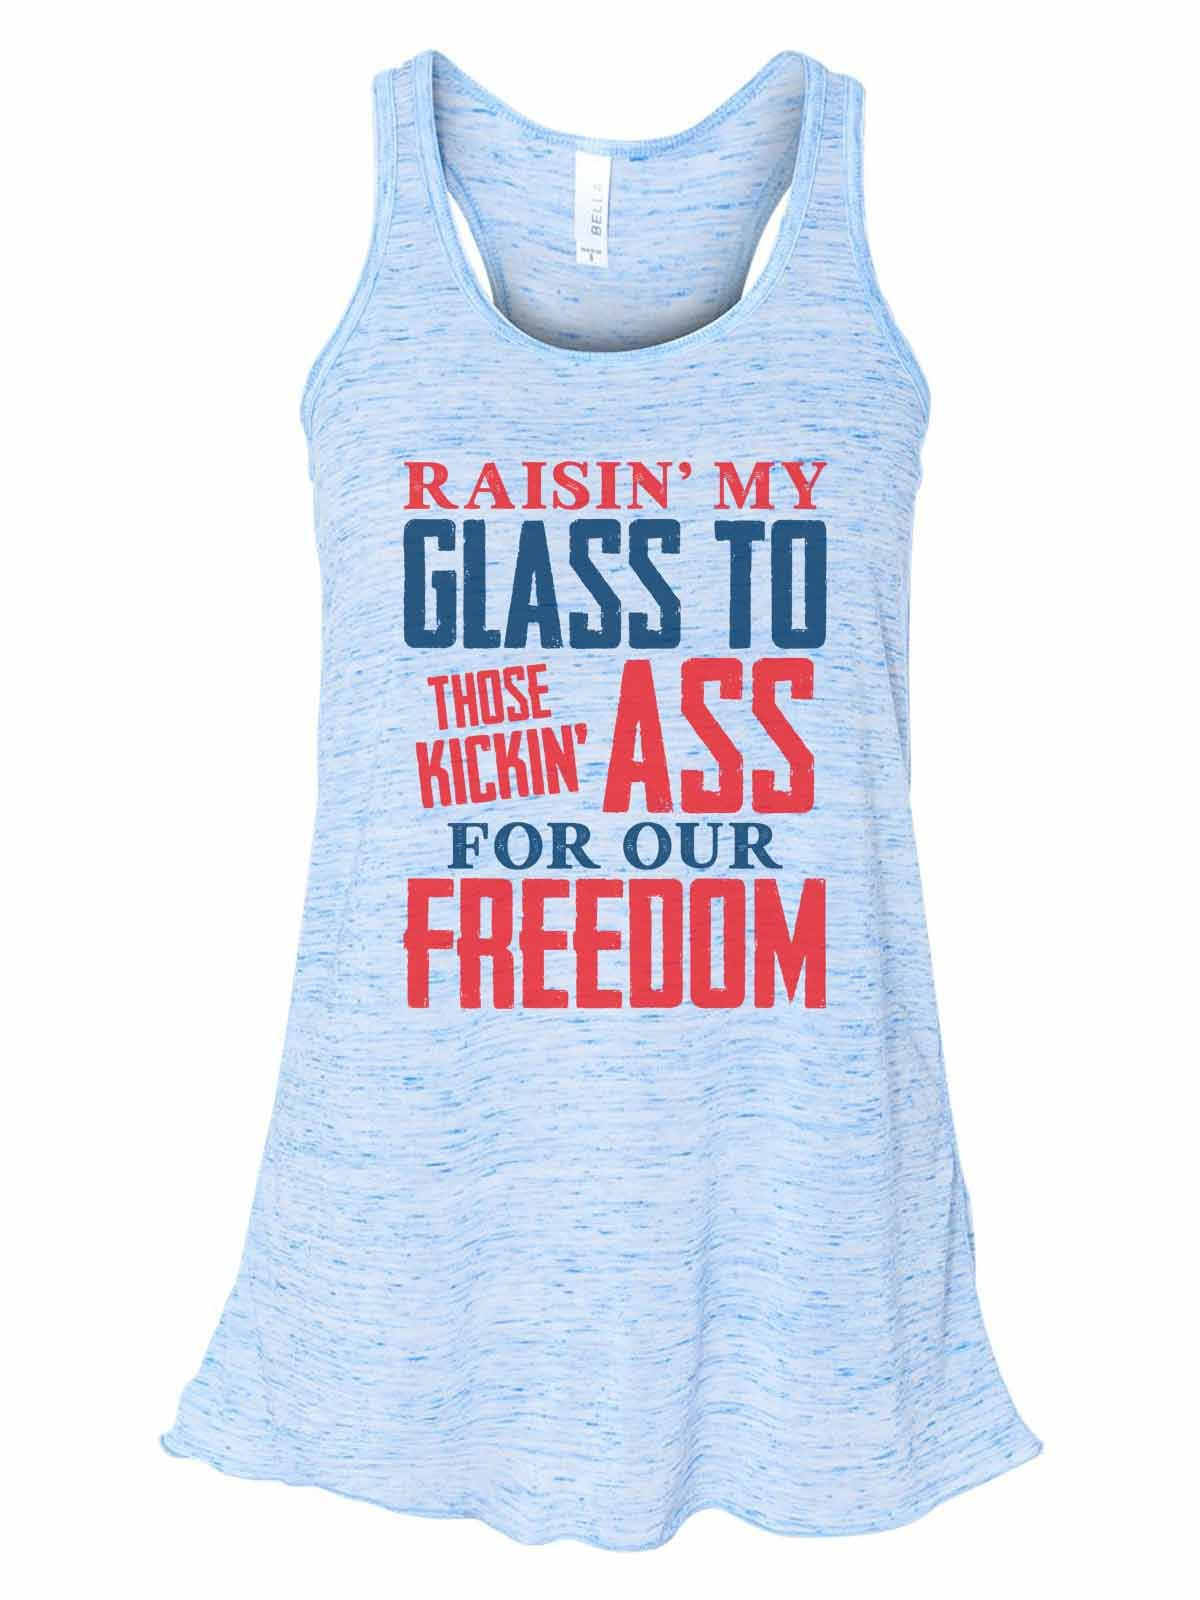 Women's Soft Bella Raisin My Glass to Those Kickin Ass for Our Freedom Small, Blue